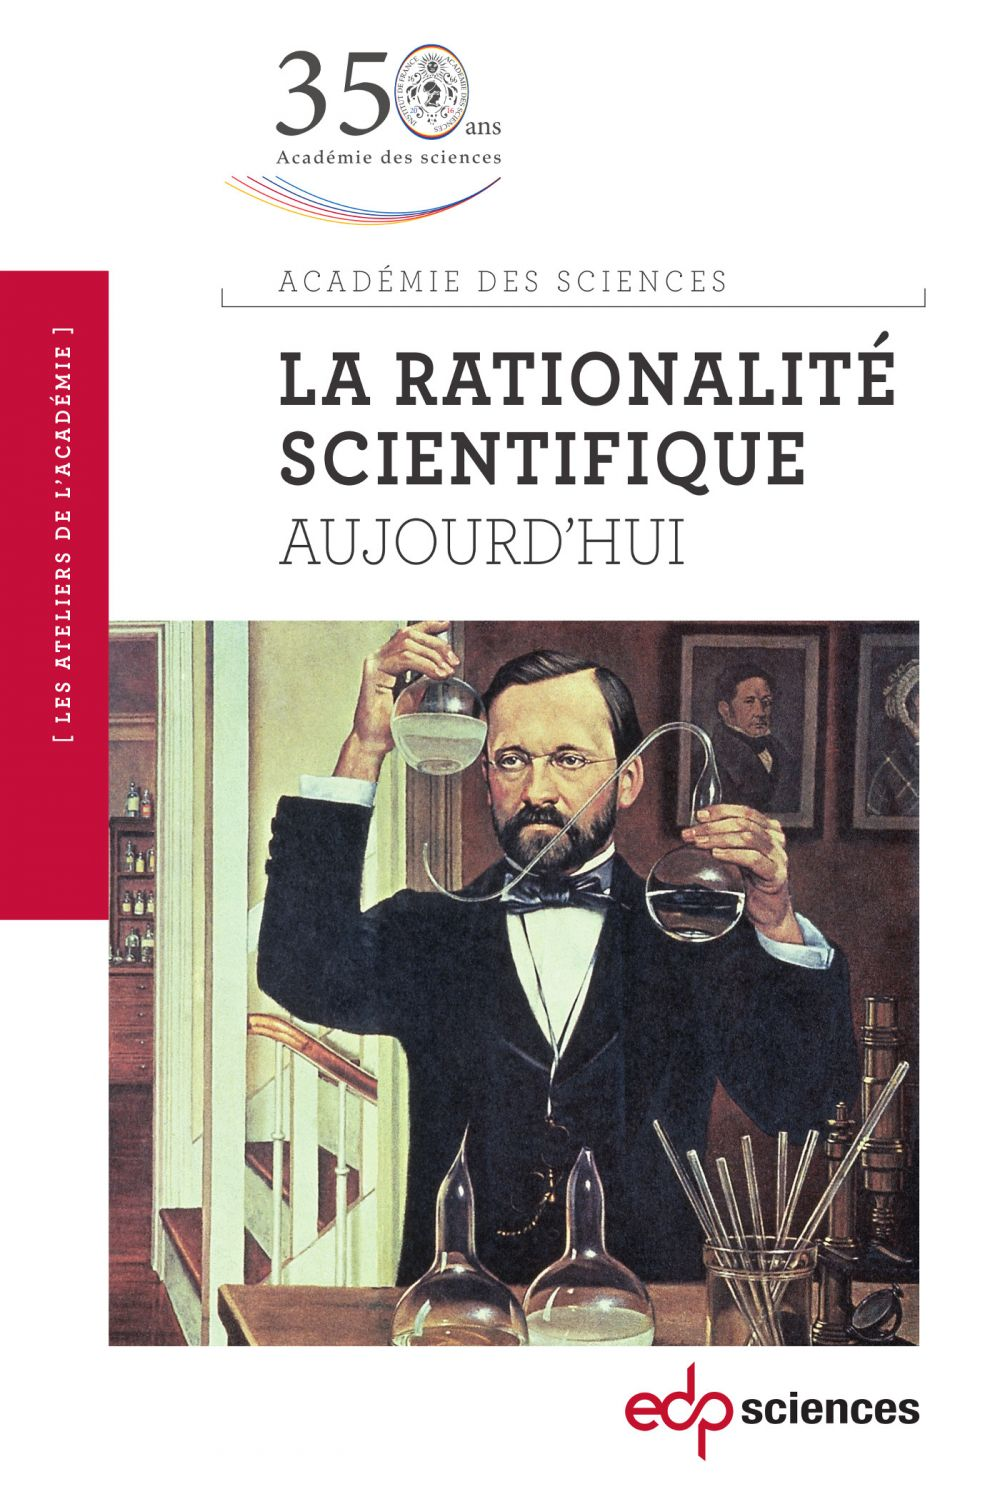 La rationalité scientifique